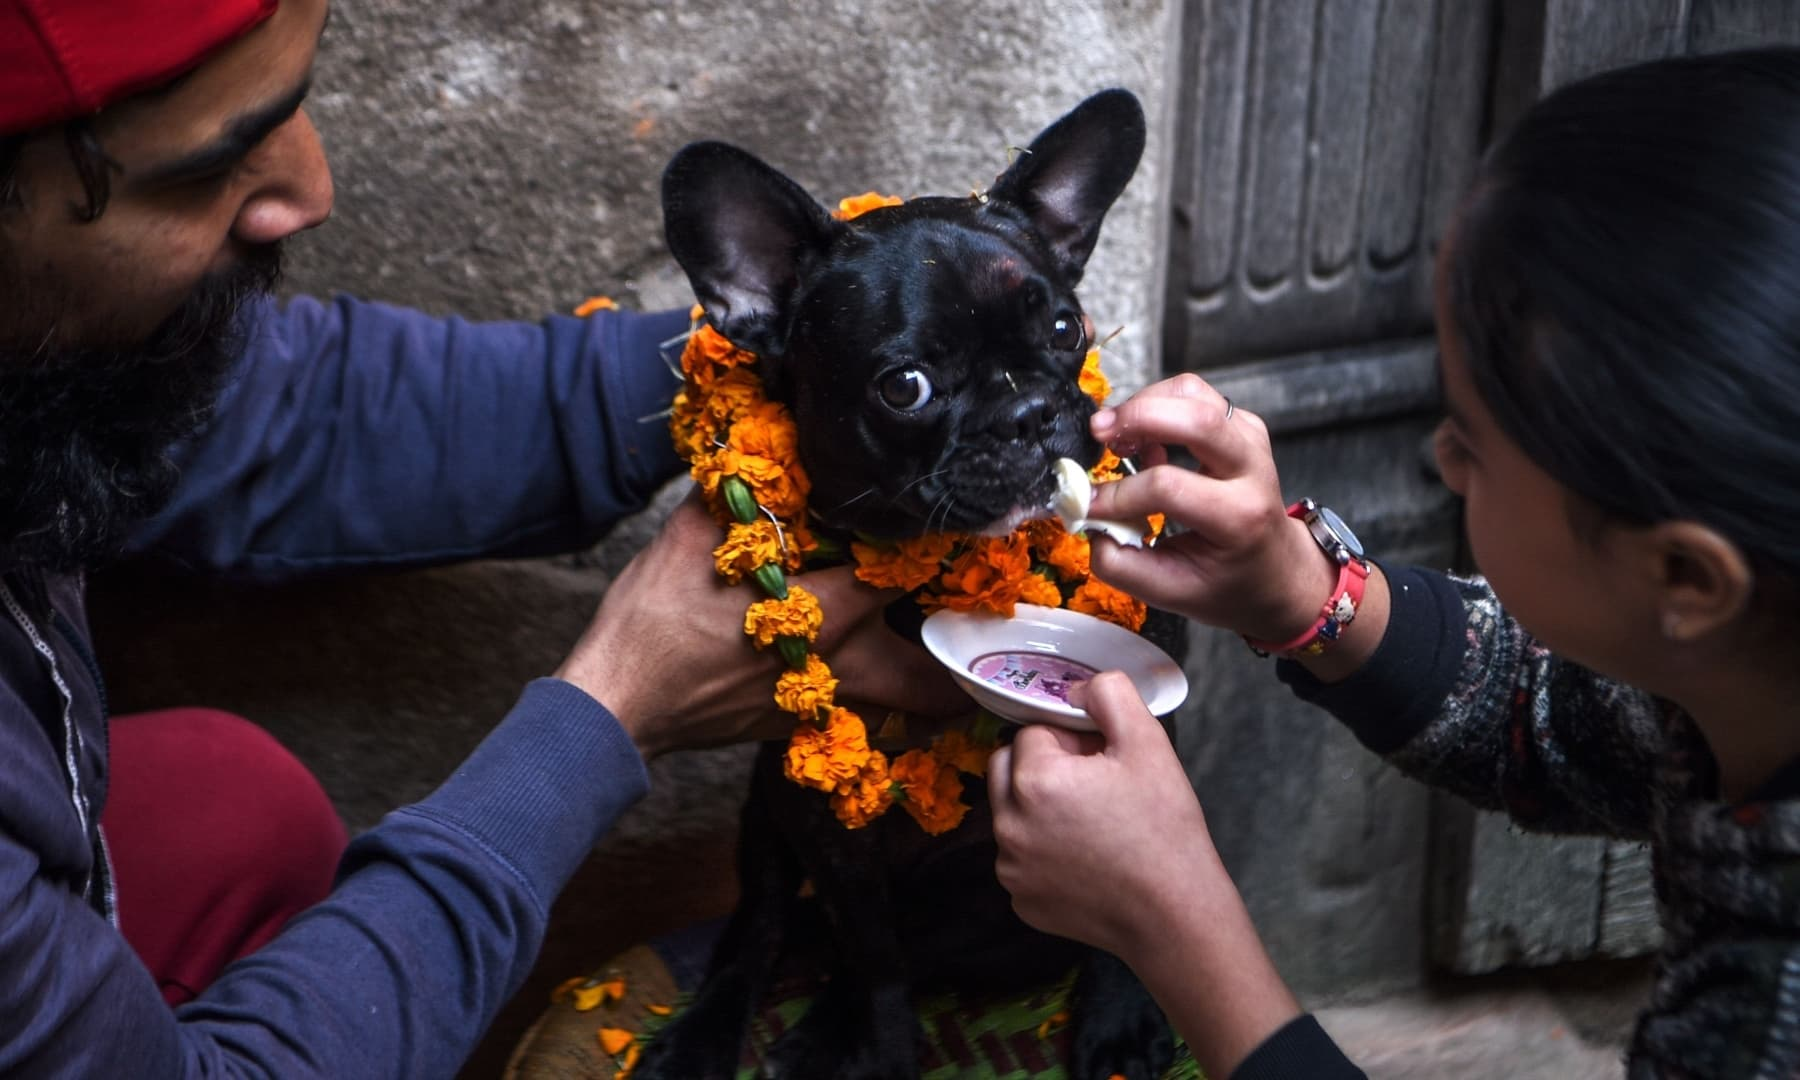 Hindu devotees worship a dog as part of offerings for Tihar which is the local name for Diwali at a dog care centre in Kathmandu, Nepal. — AFP